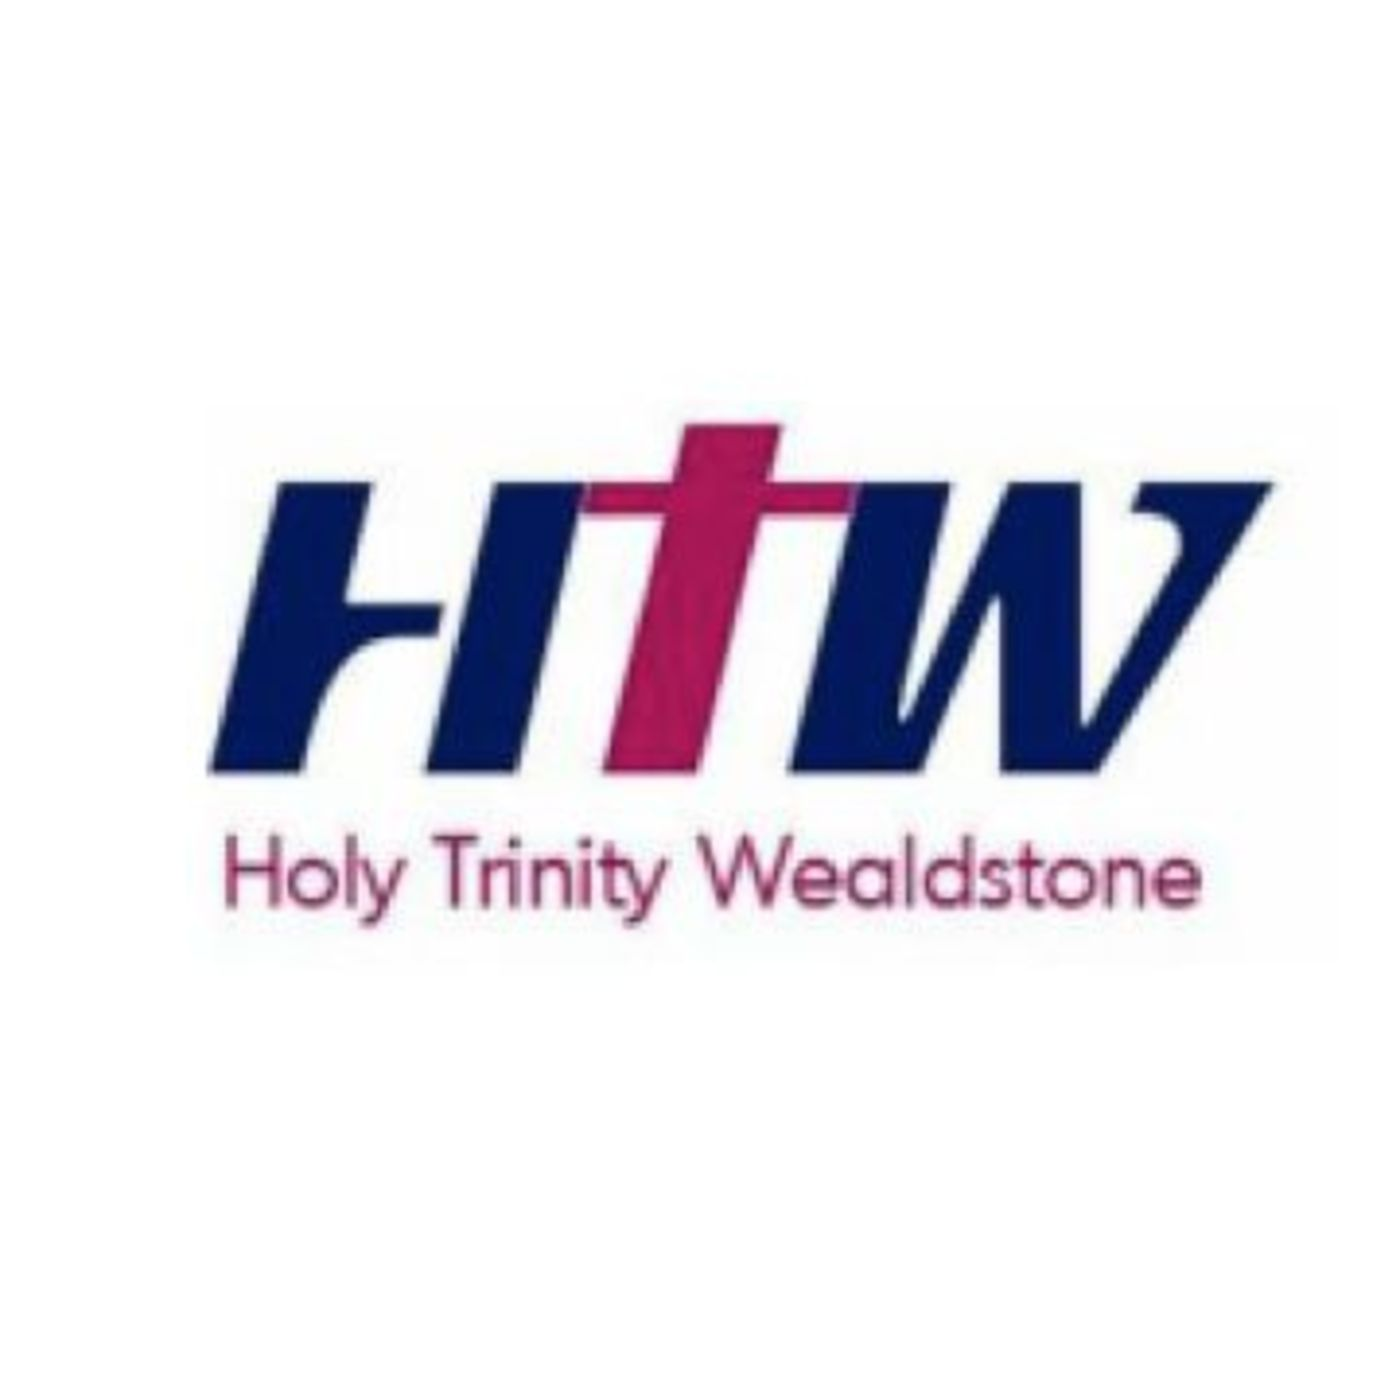 Holy Trinity Wealdstone Sermons